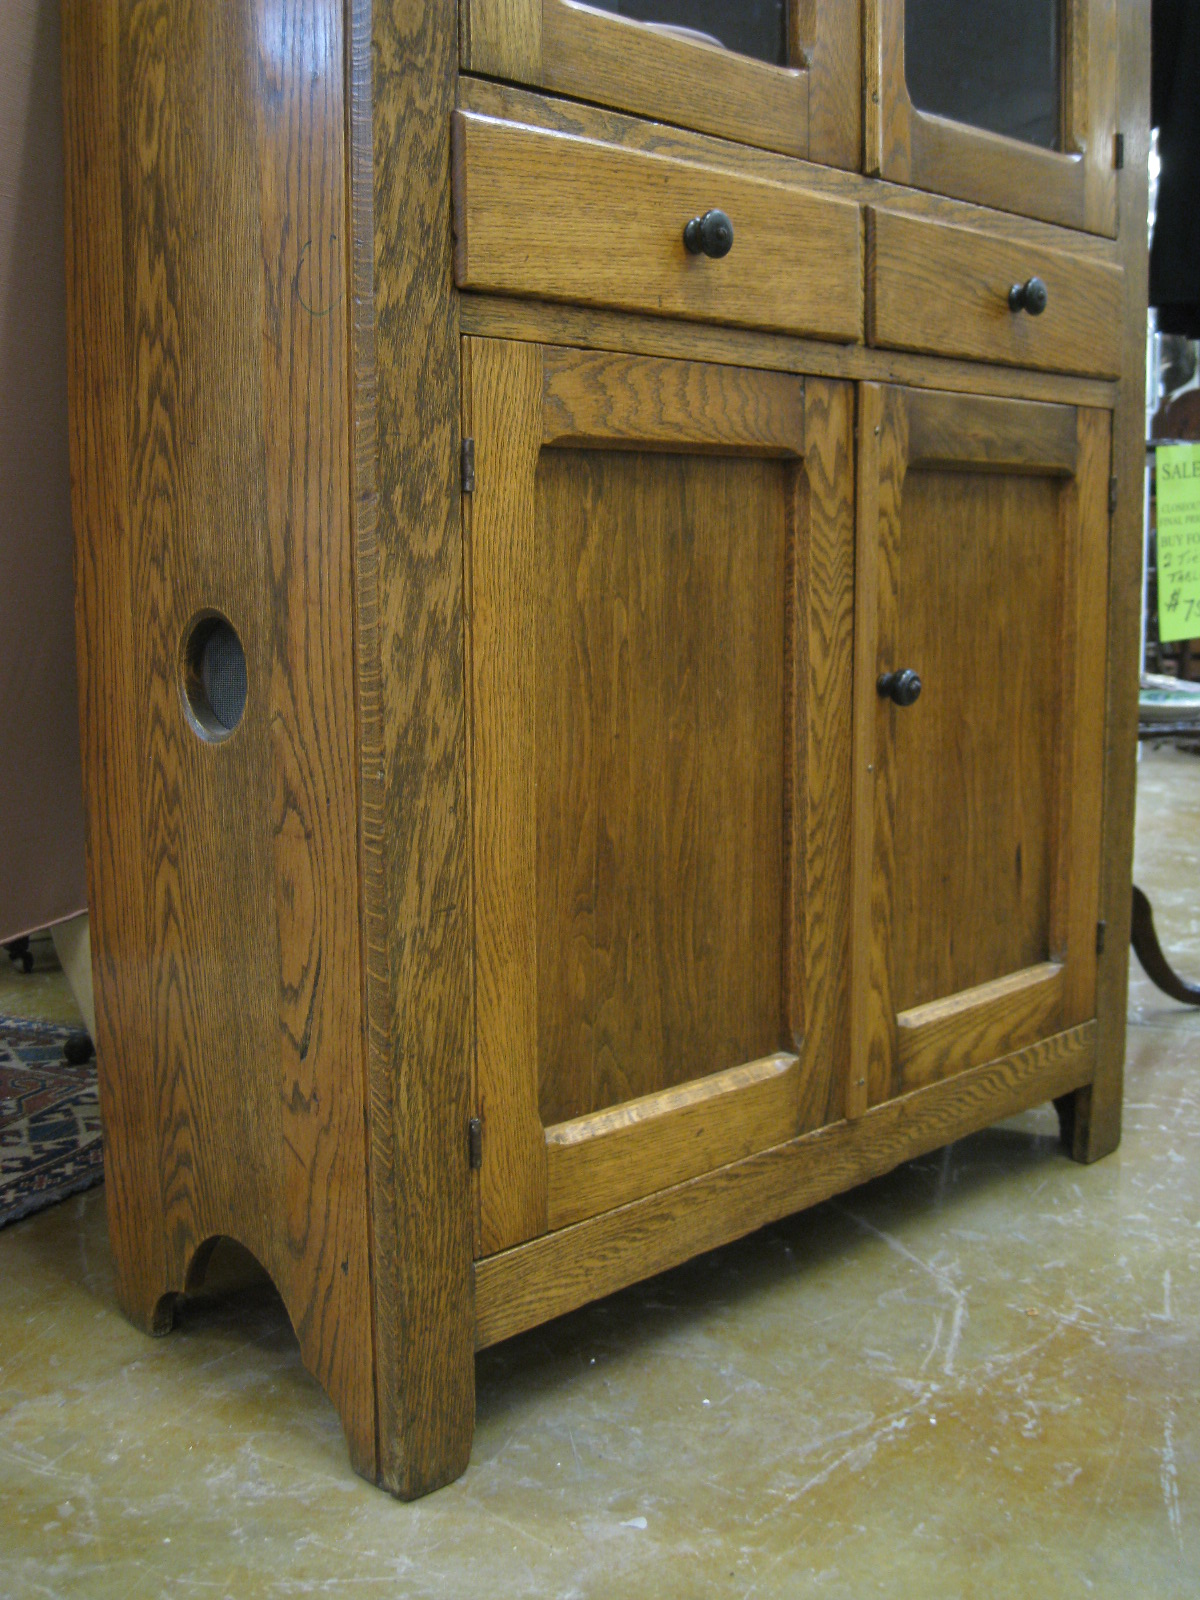 Antique Pie Safe Cabinet | Antique Furniture